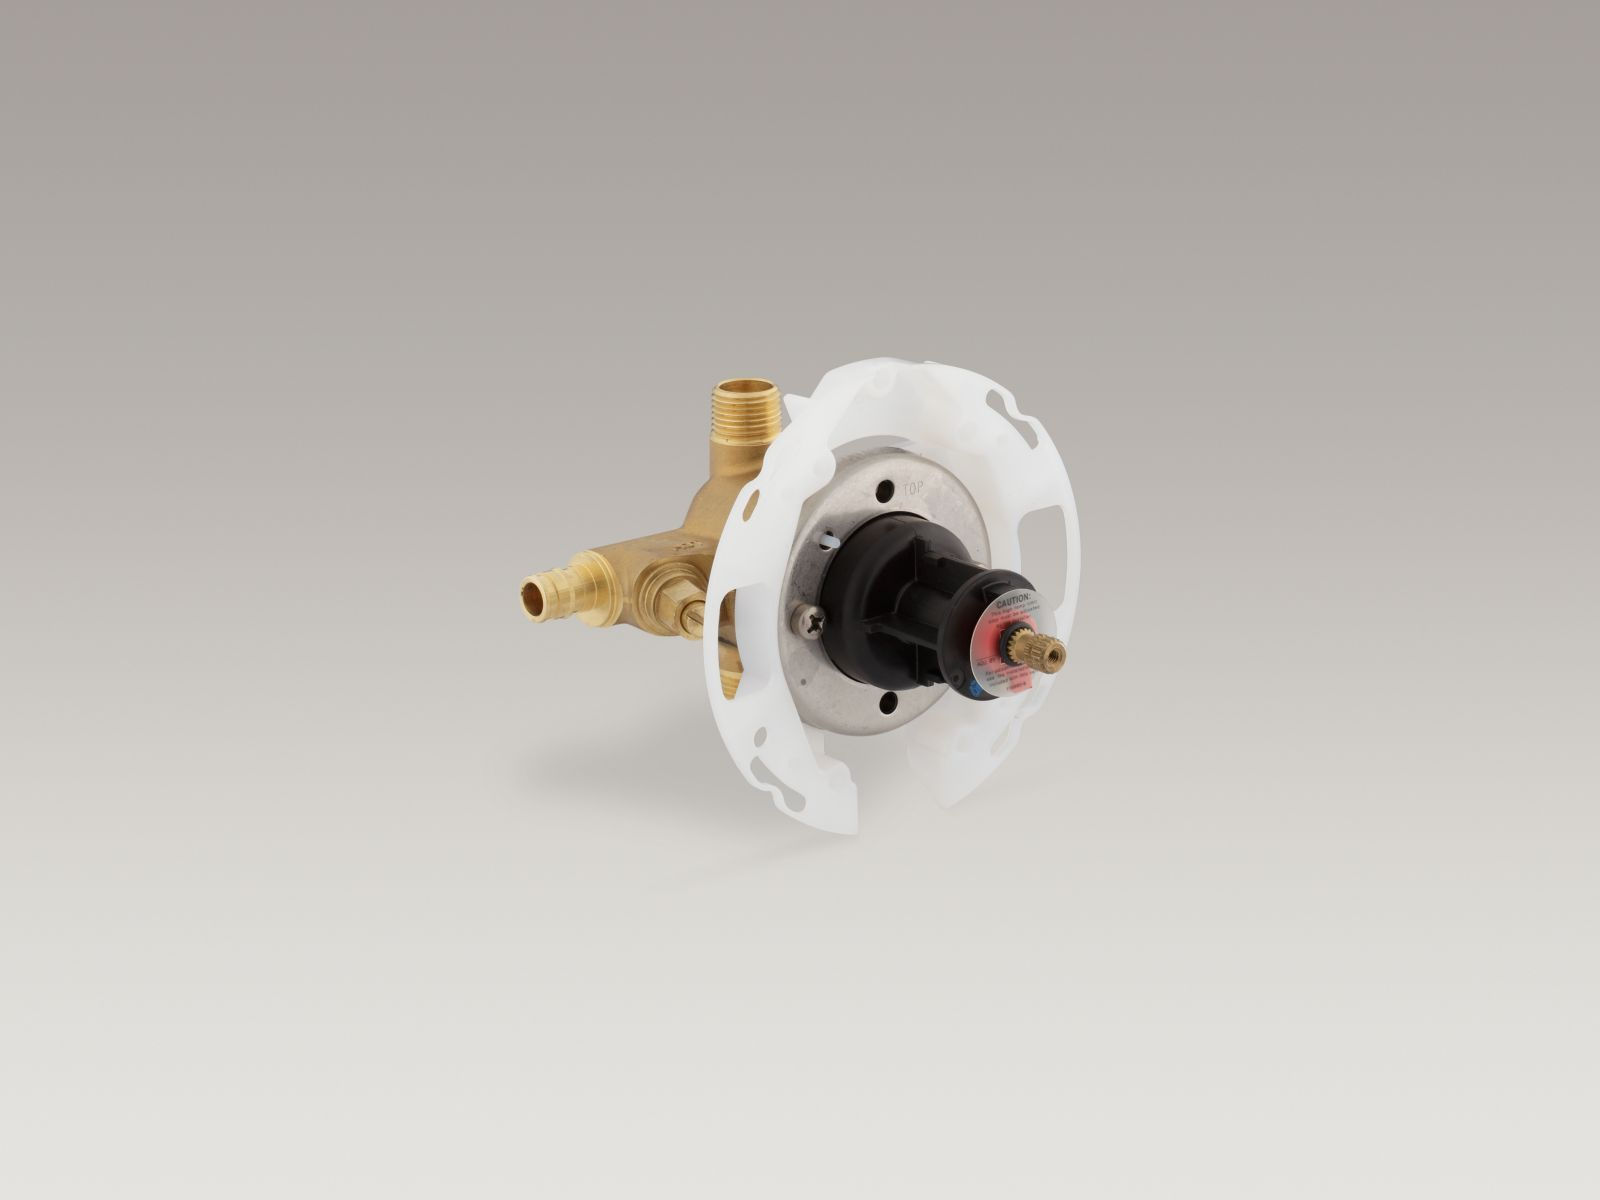 Kohler K-P304-US-NA Rite-Temp Shower Valve with Stops and PEX-expansion Inlets